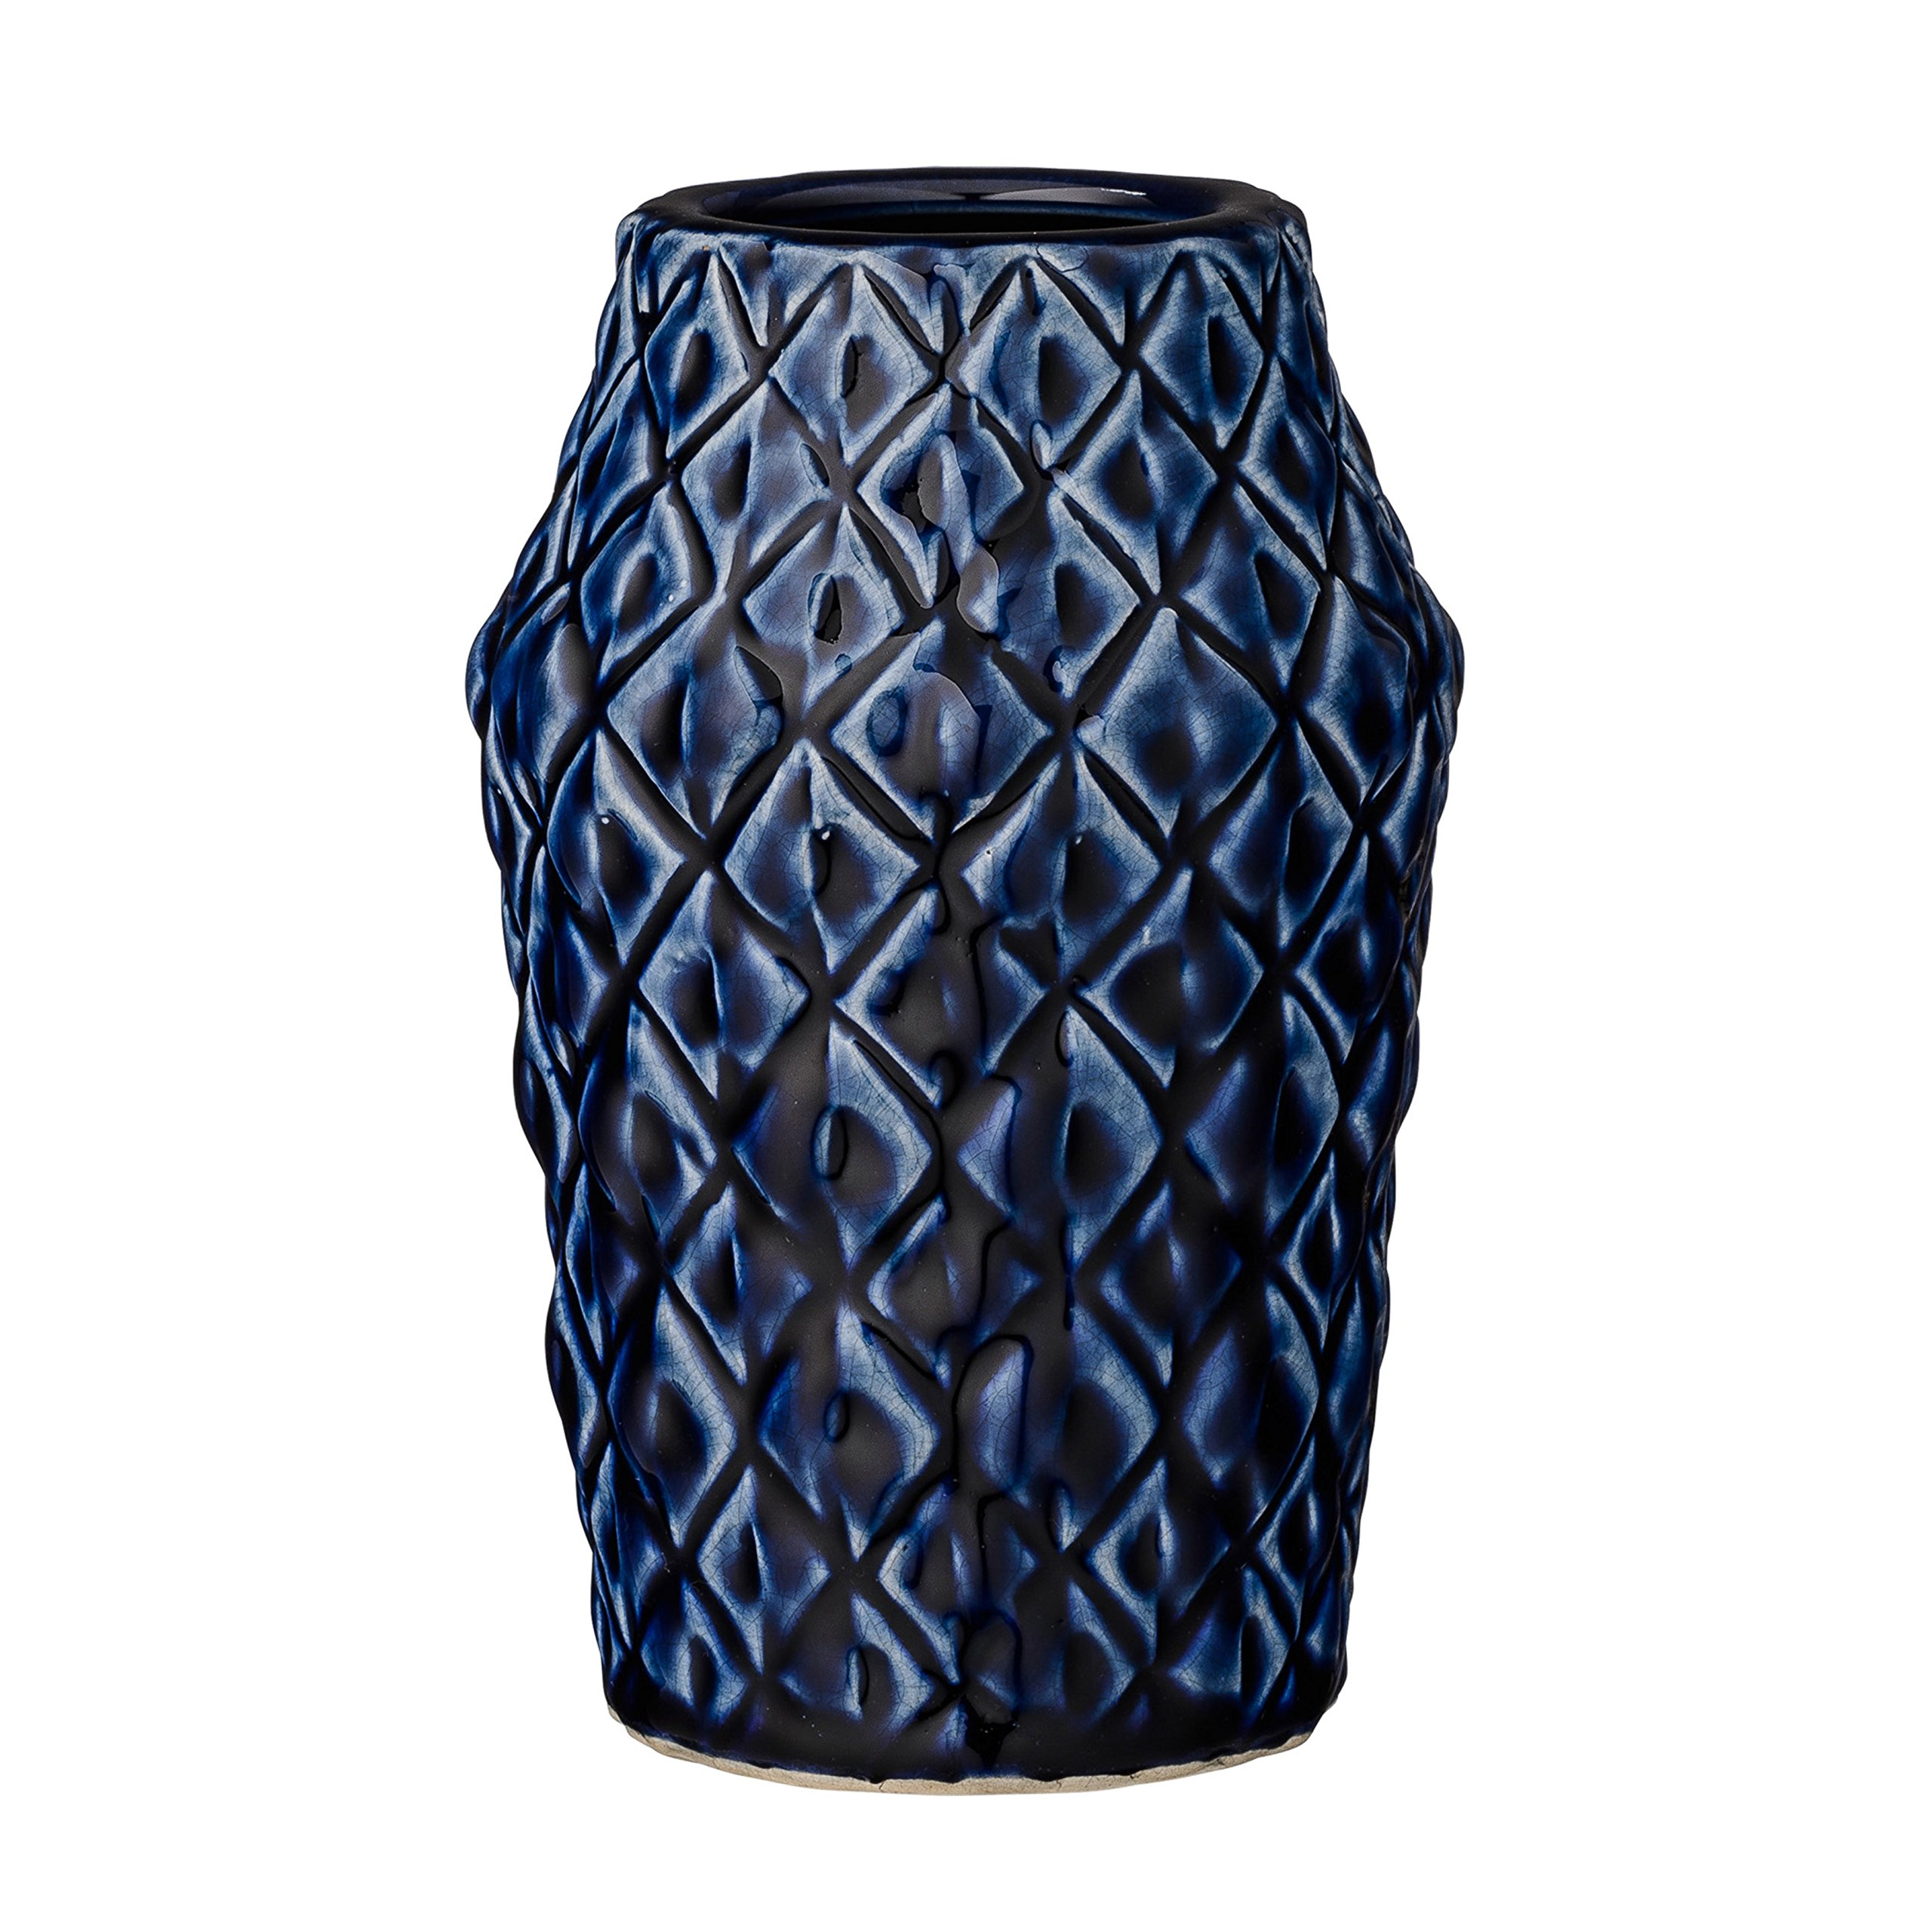 Bloomingville A27120013 Navy Patterned Ceramic Vase